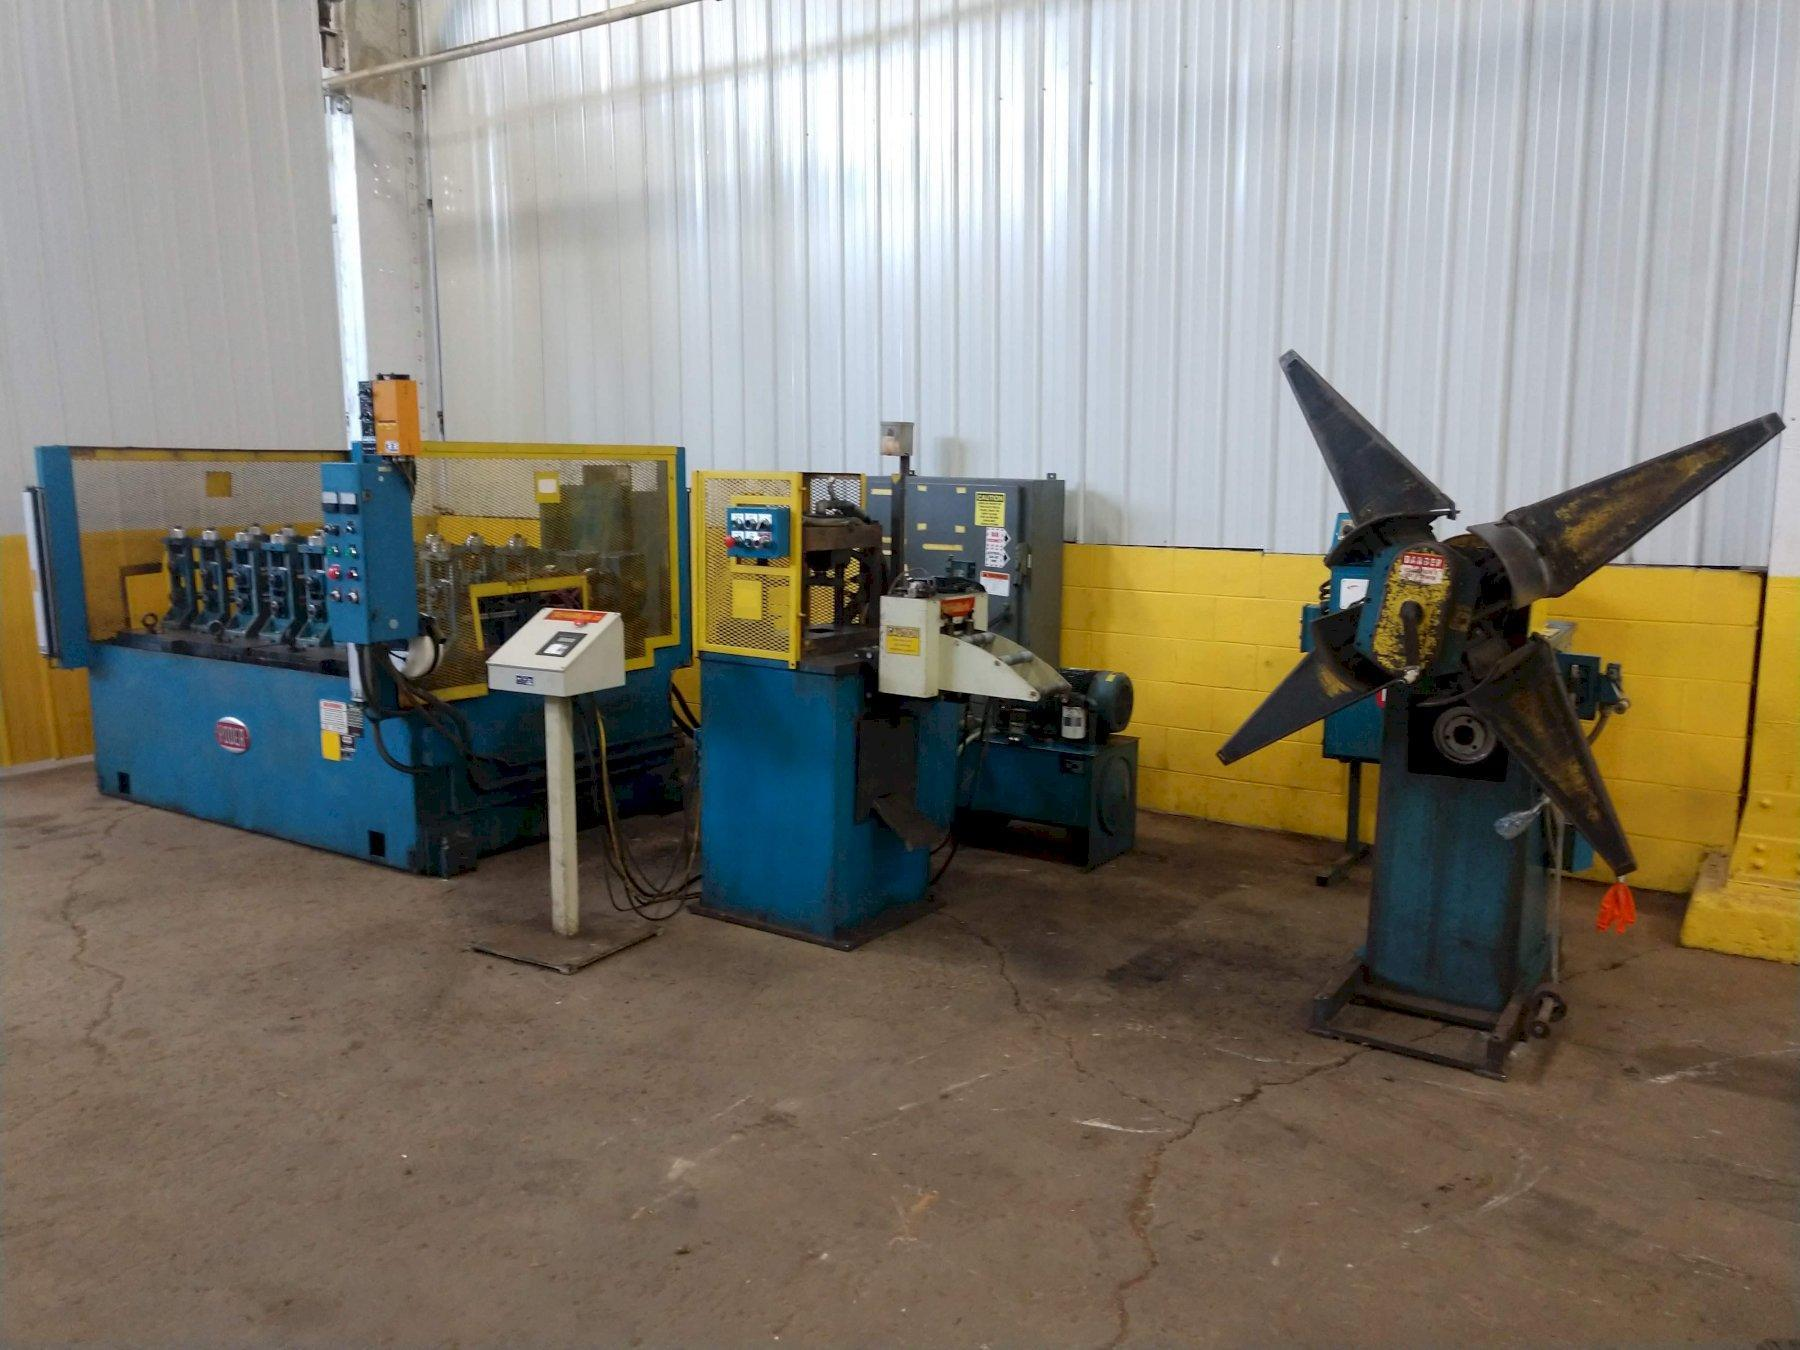 "8 STAND x 1.5"" YODER RAFTED ROLL FORMER LINE; COIL REEL, SERVO FEED, PUNCH, MILL: STOCK #13262"